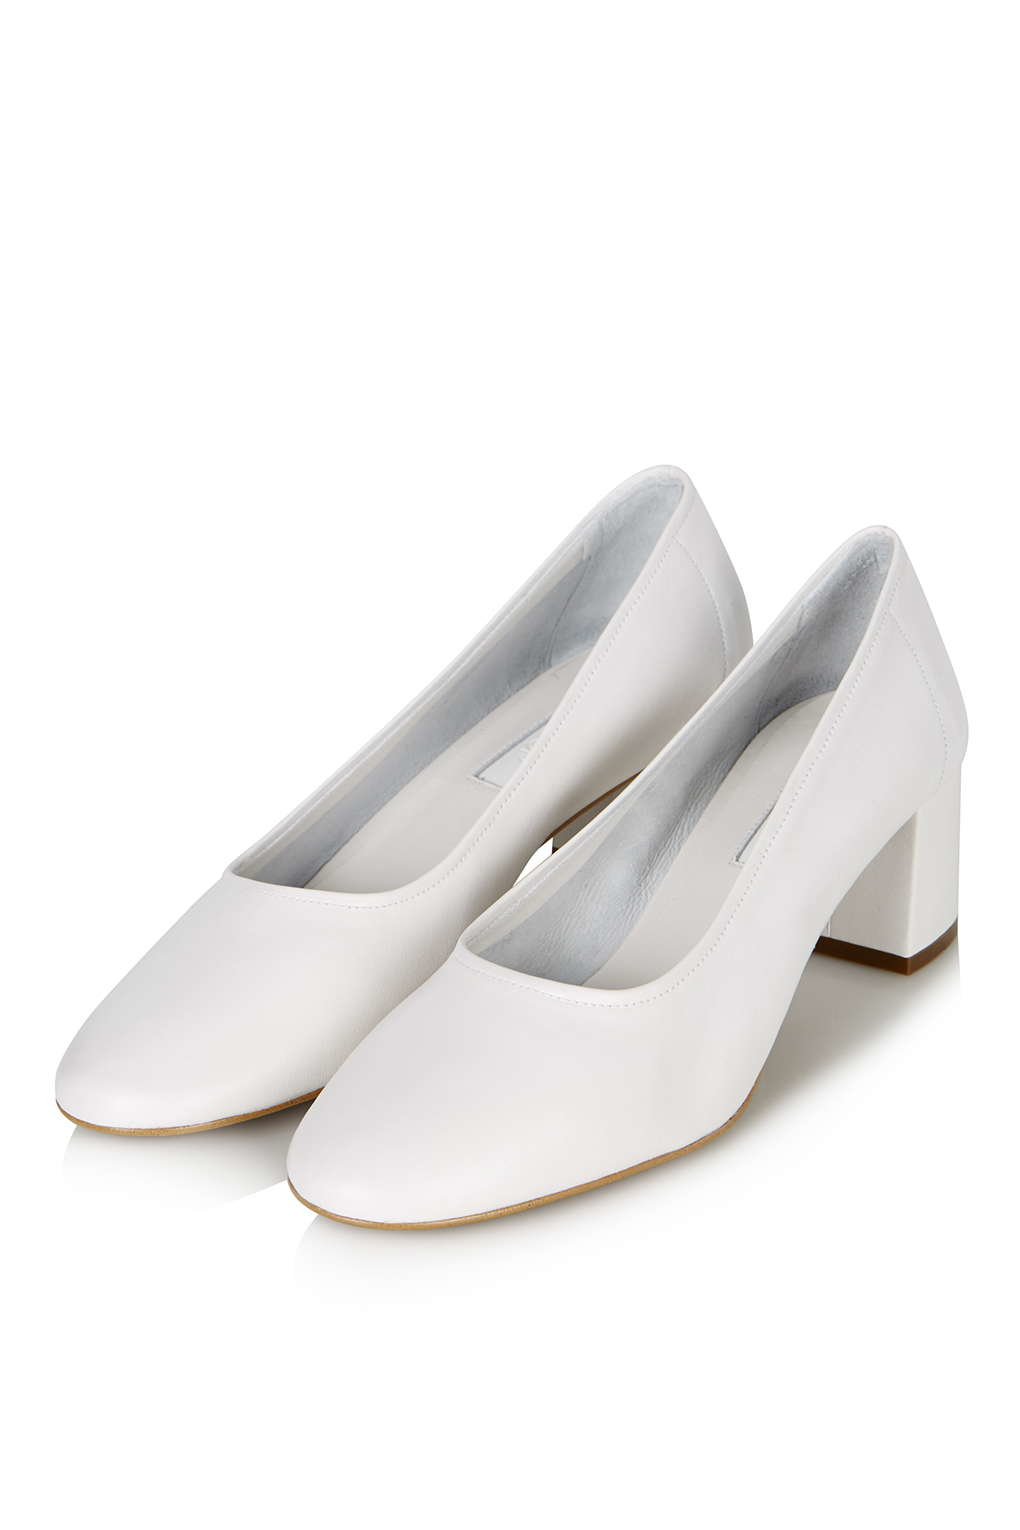 Lyst Topshop Juno Soft Glove Mid Shoes In White